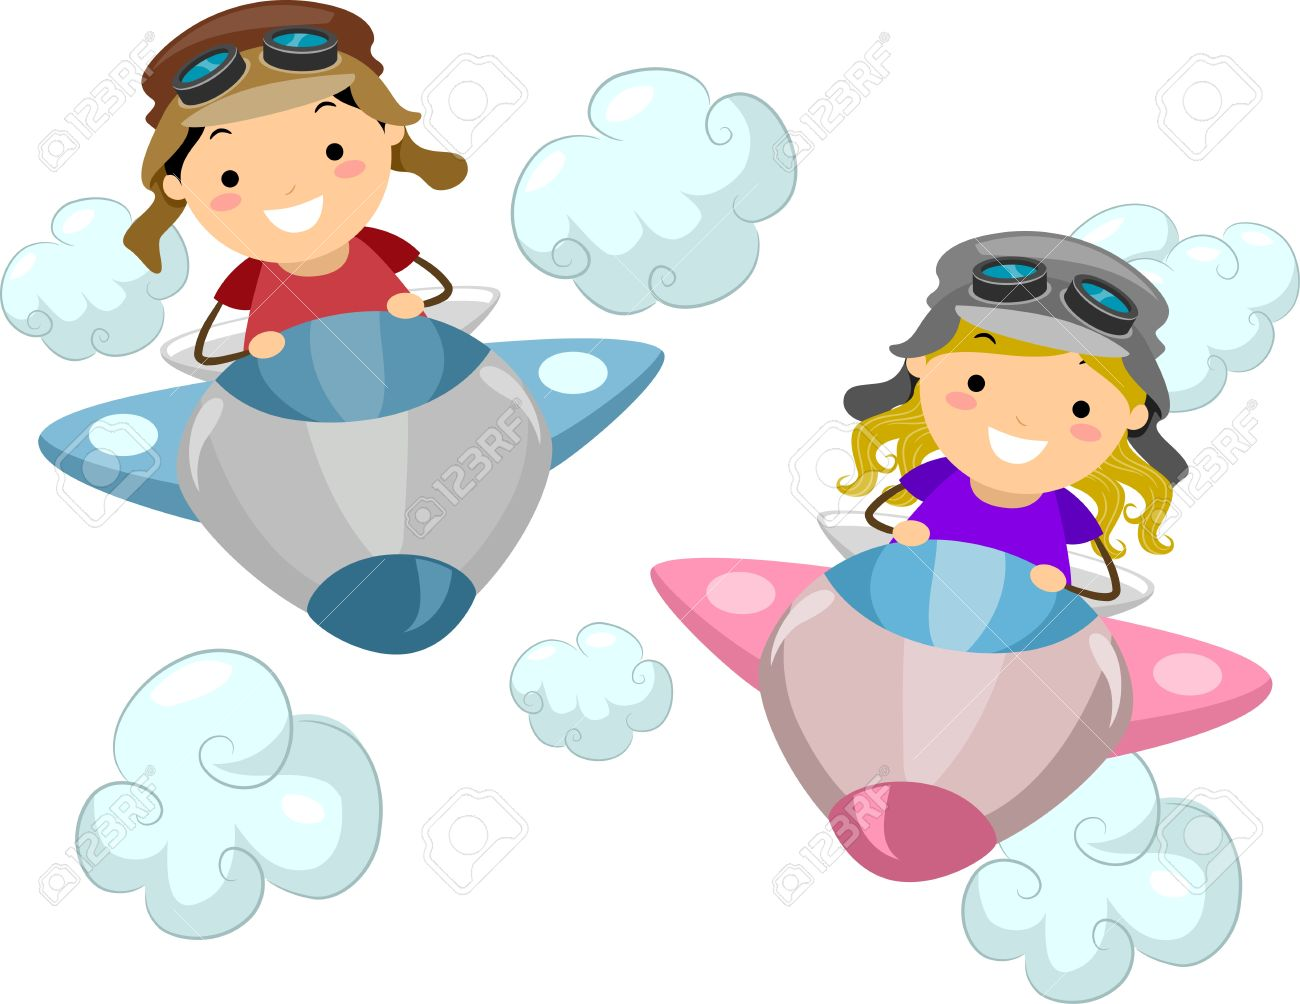 Airplane kid. Images for kids clipart